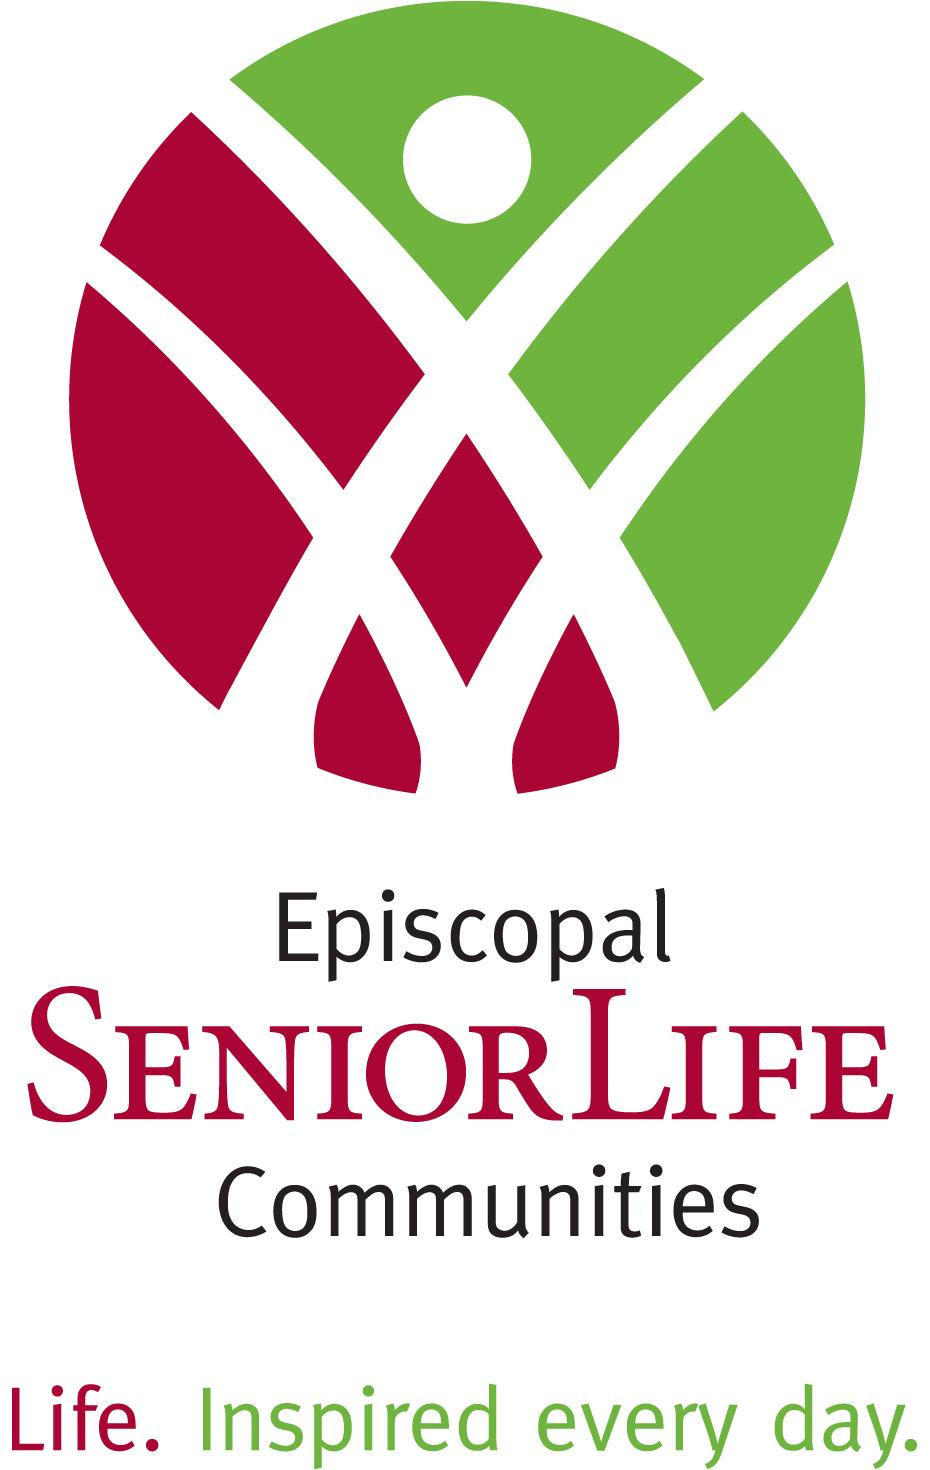 Episcopal Seniorlife